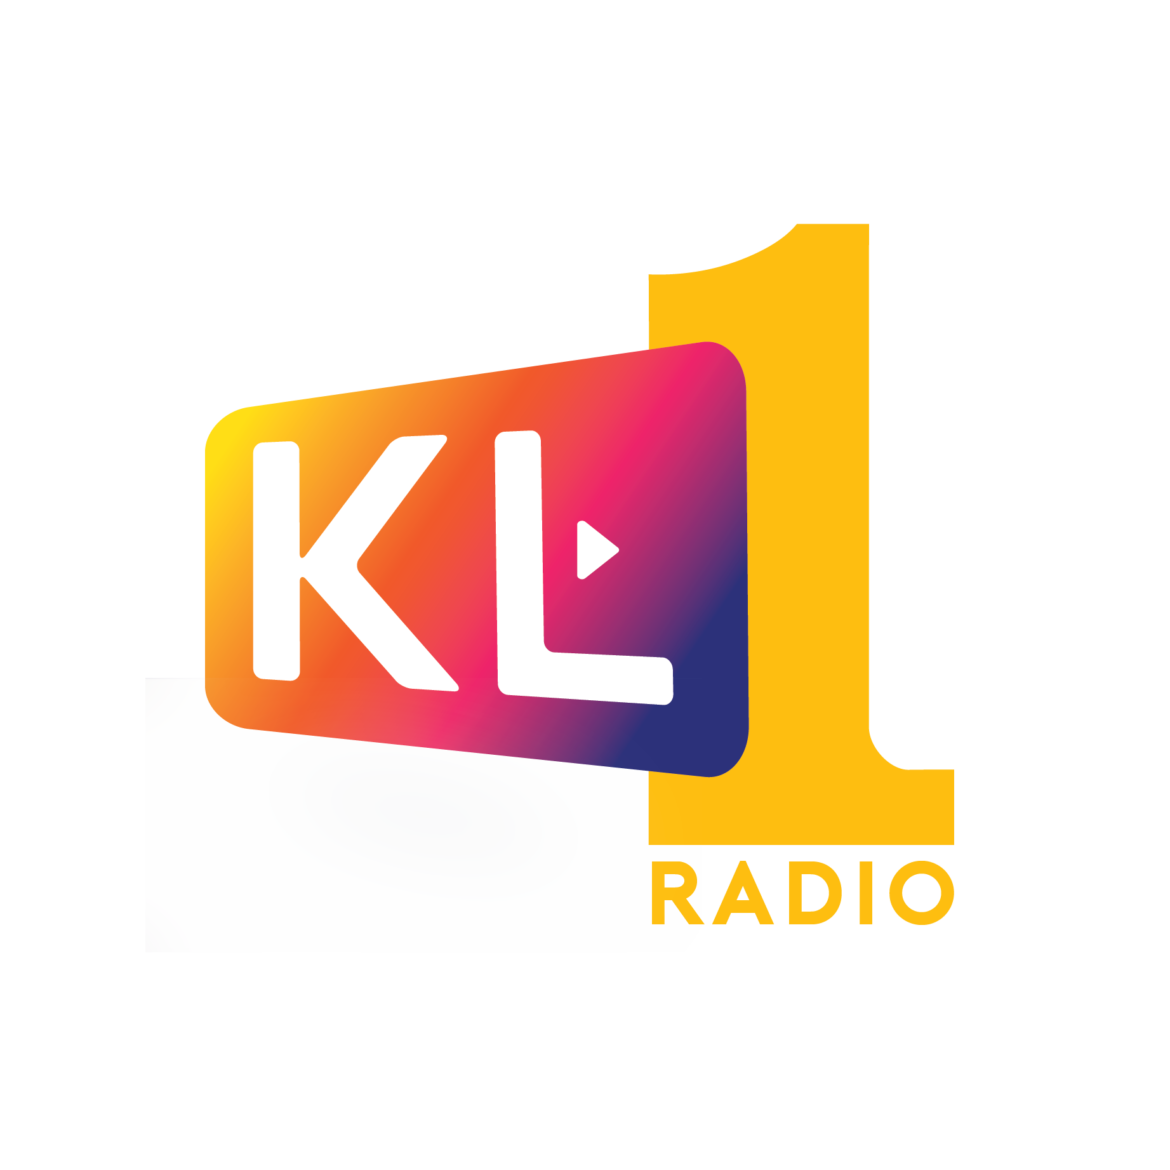 This is KL1 Radio for West Norfolk